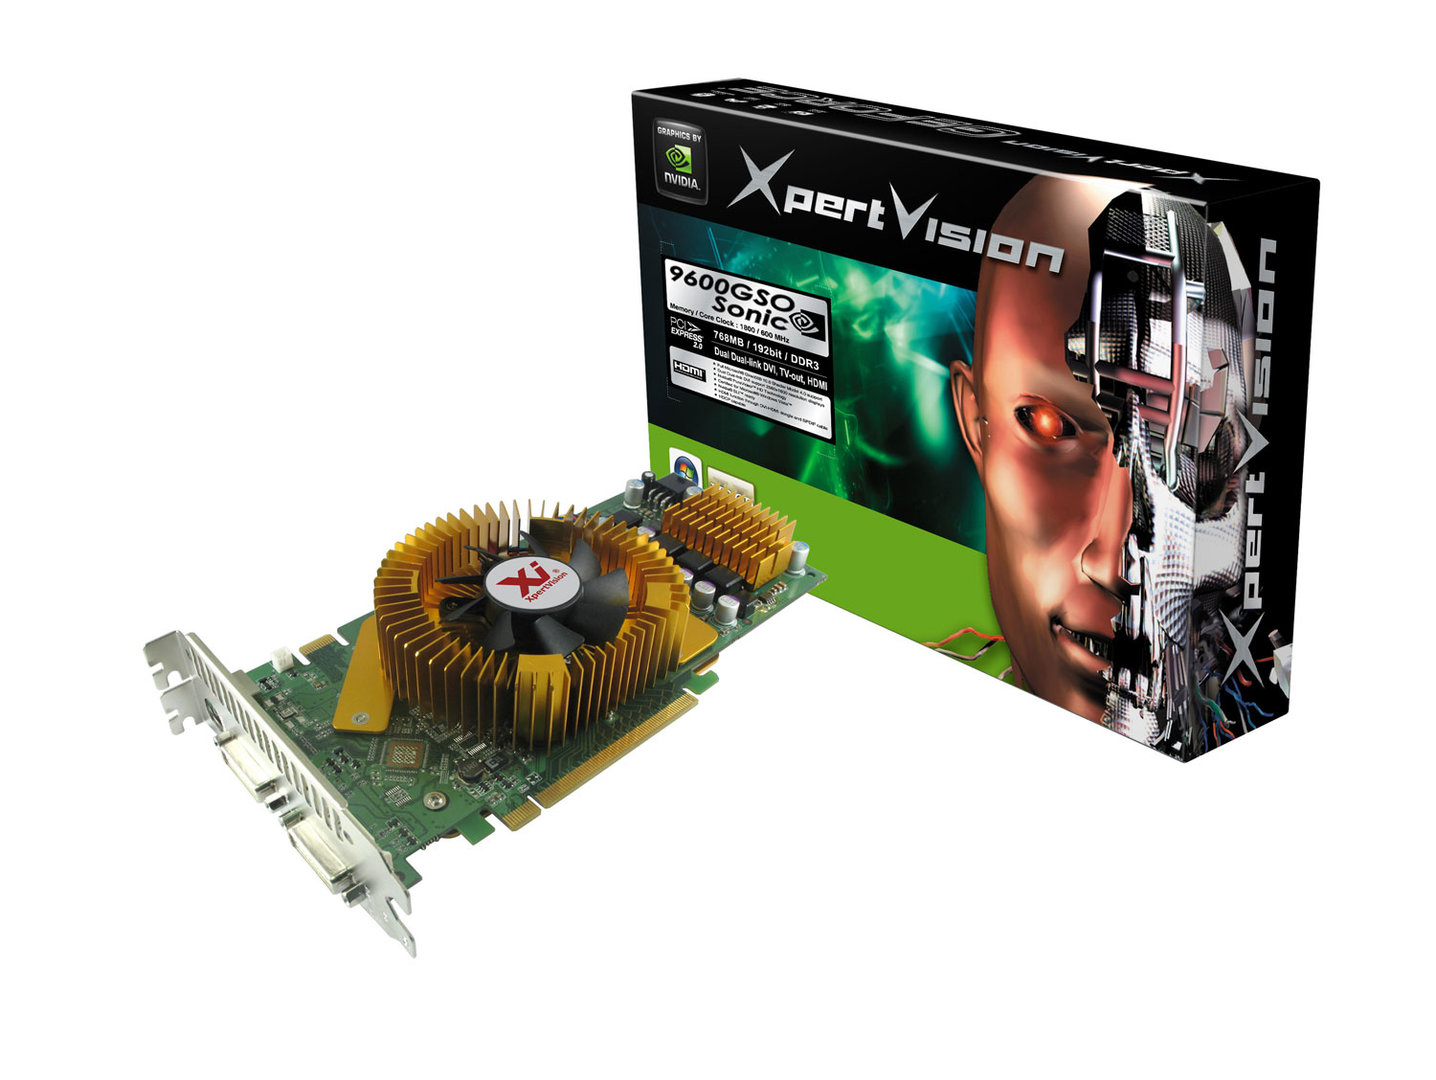 XpertVision GeForce 9600GSO Sonic